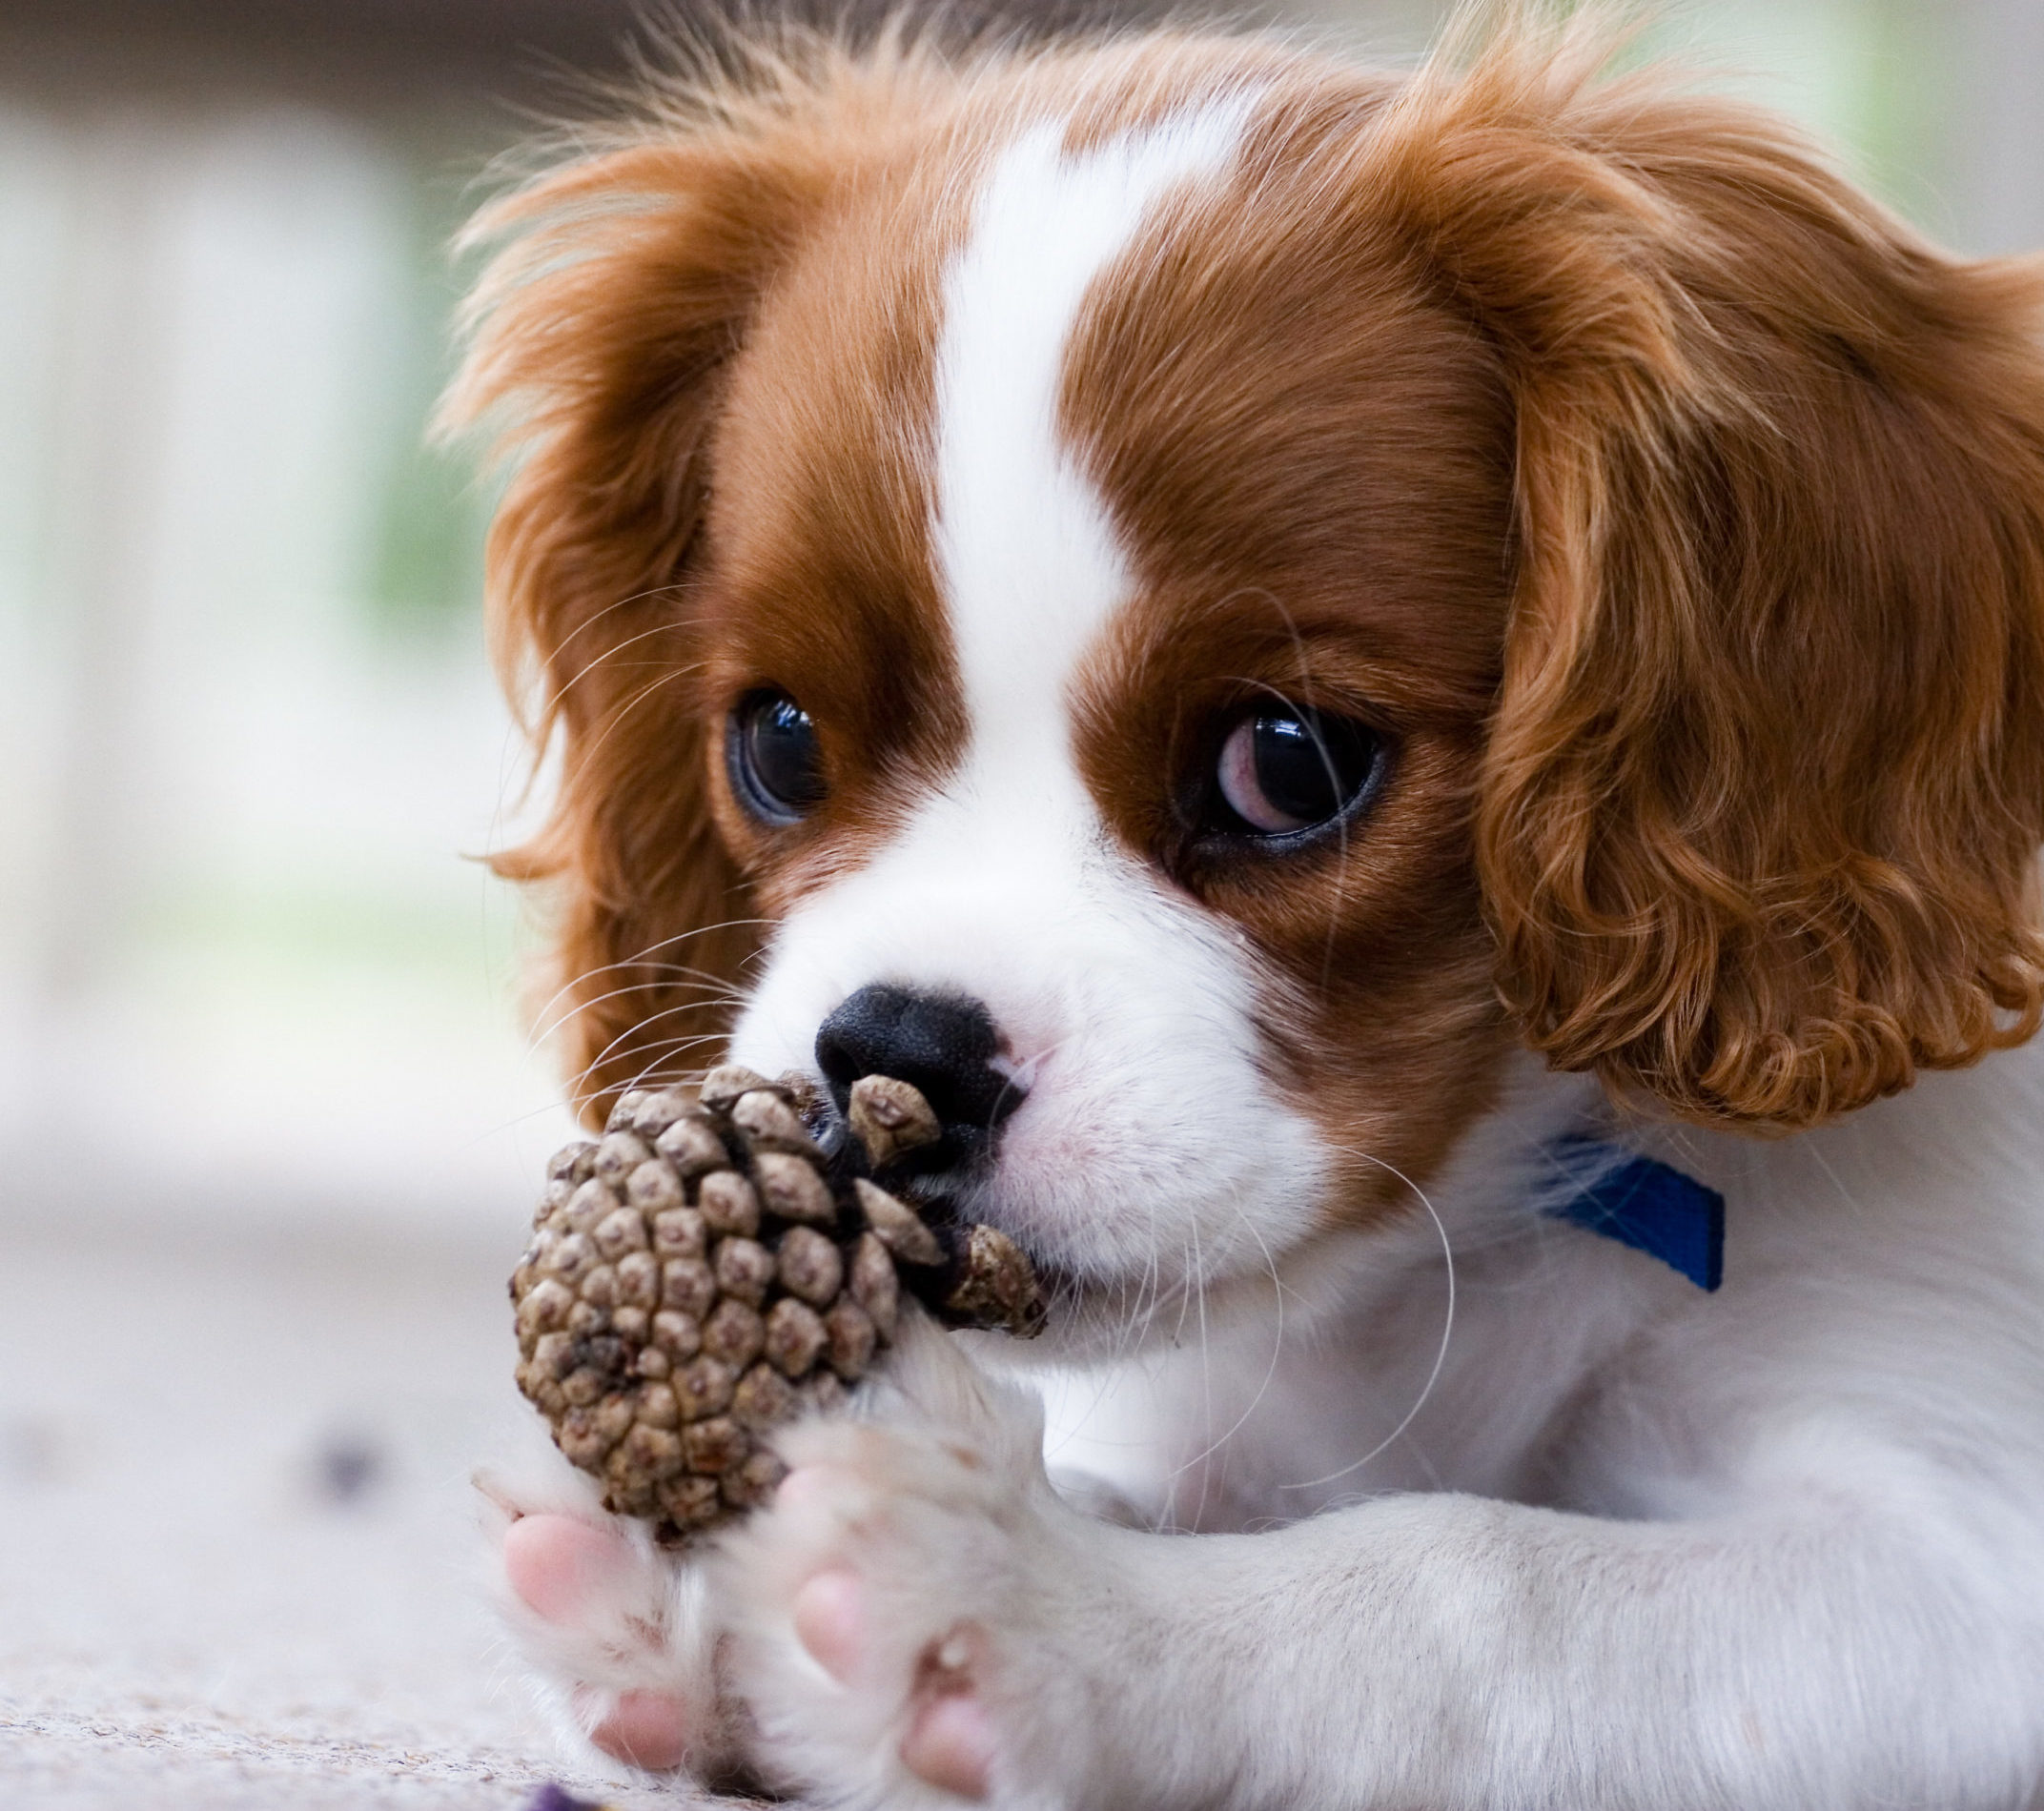 cute little cavalier puppy and a pinecone